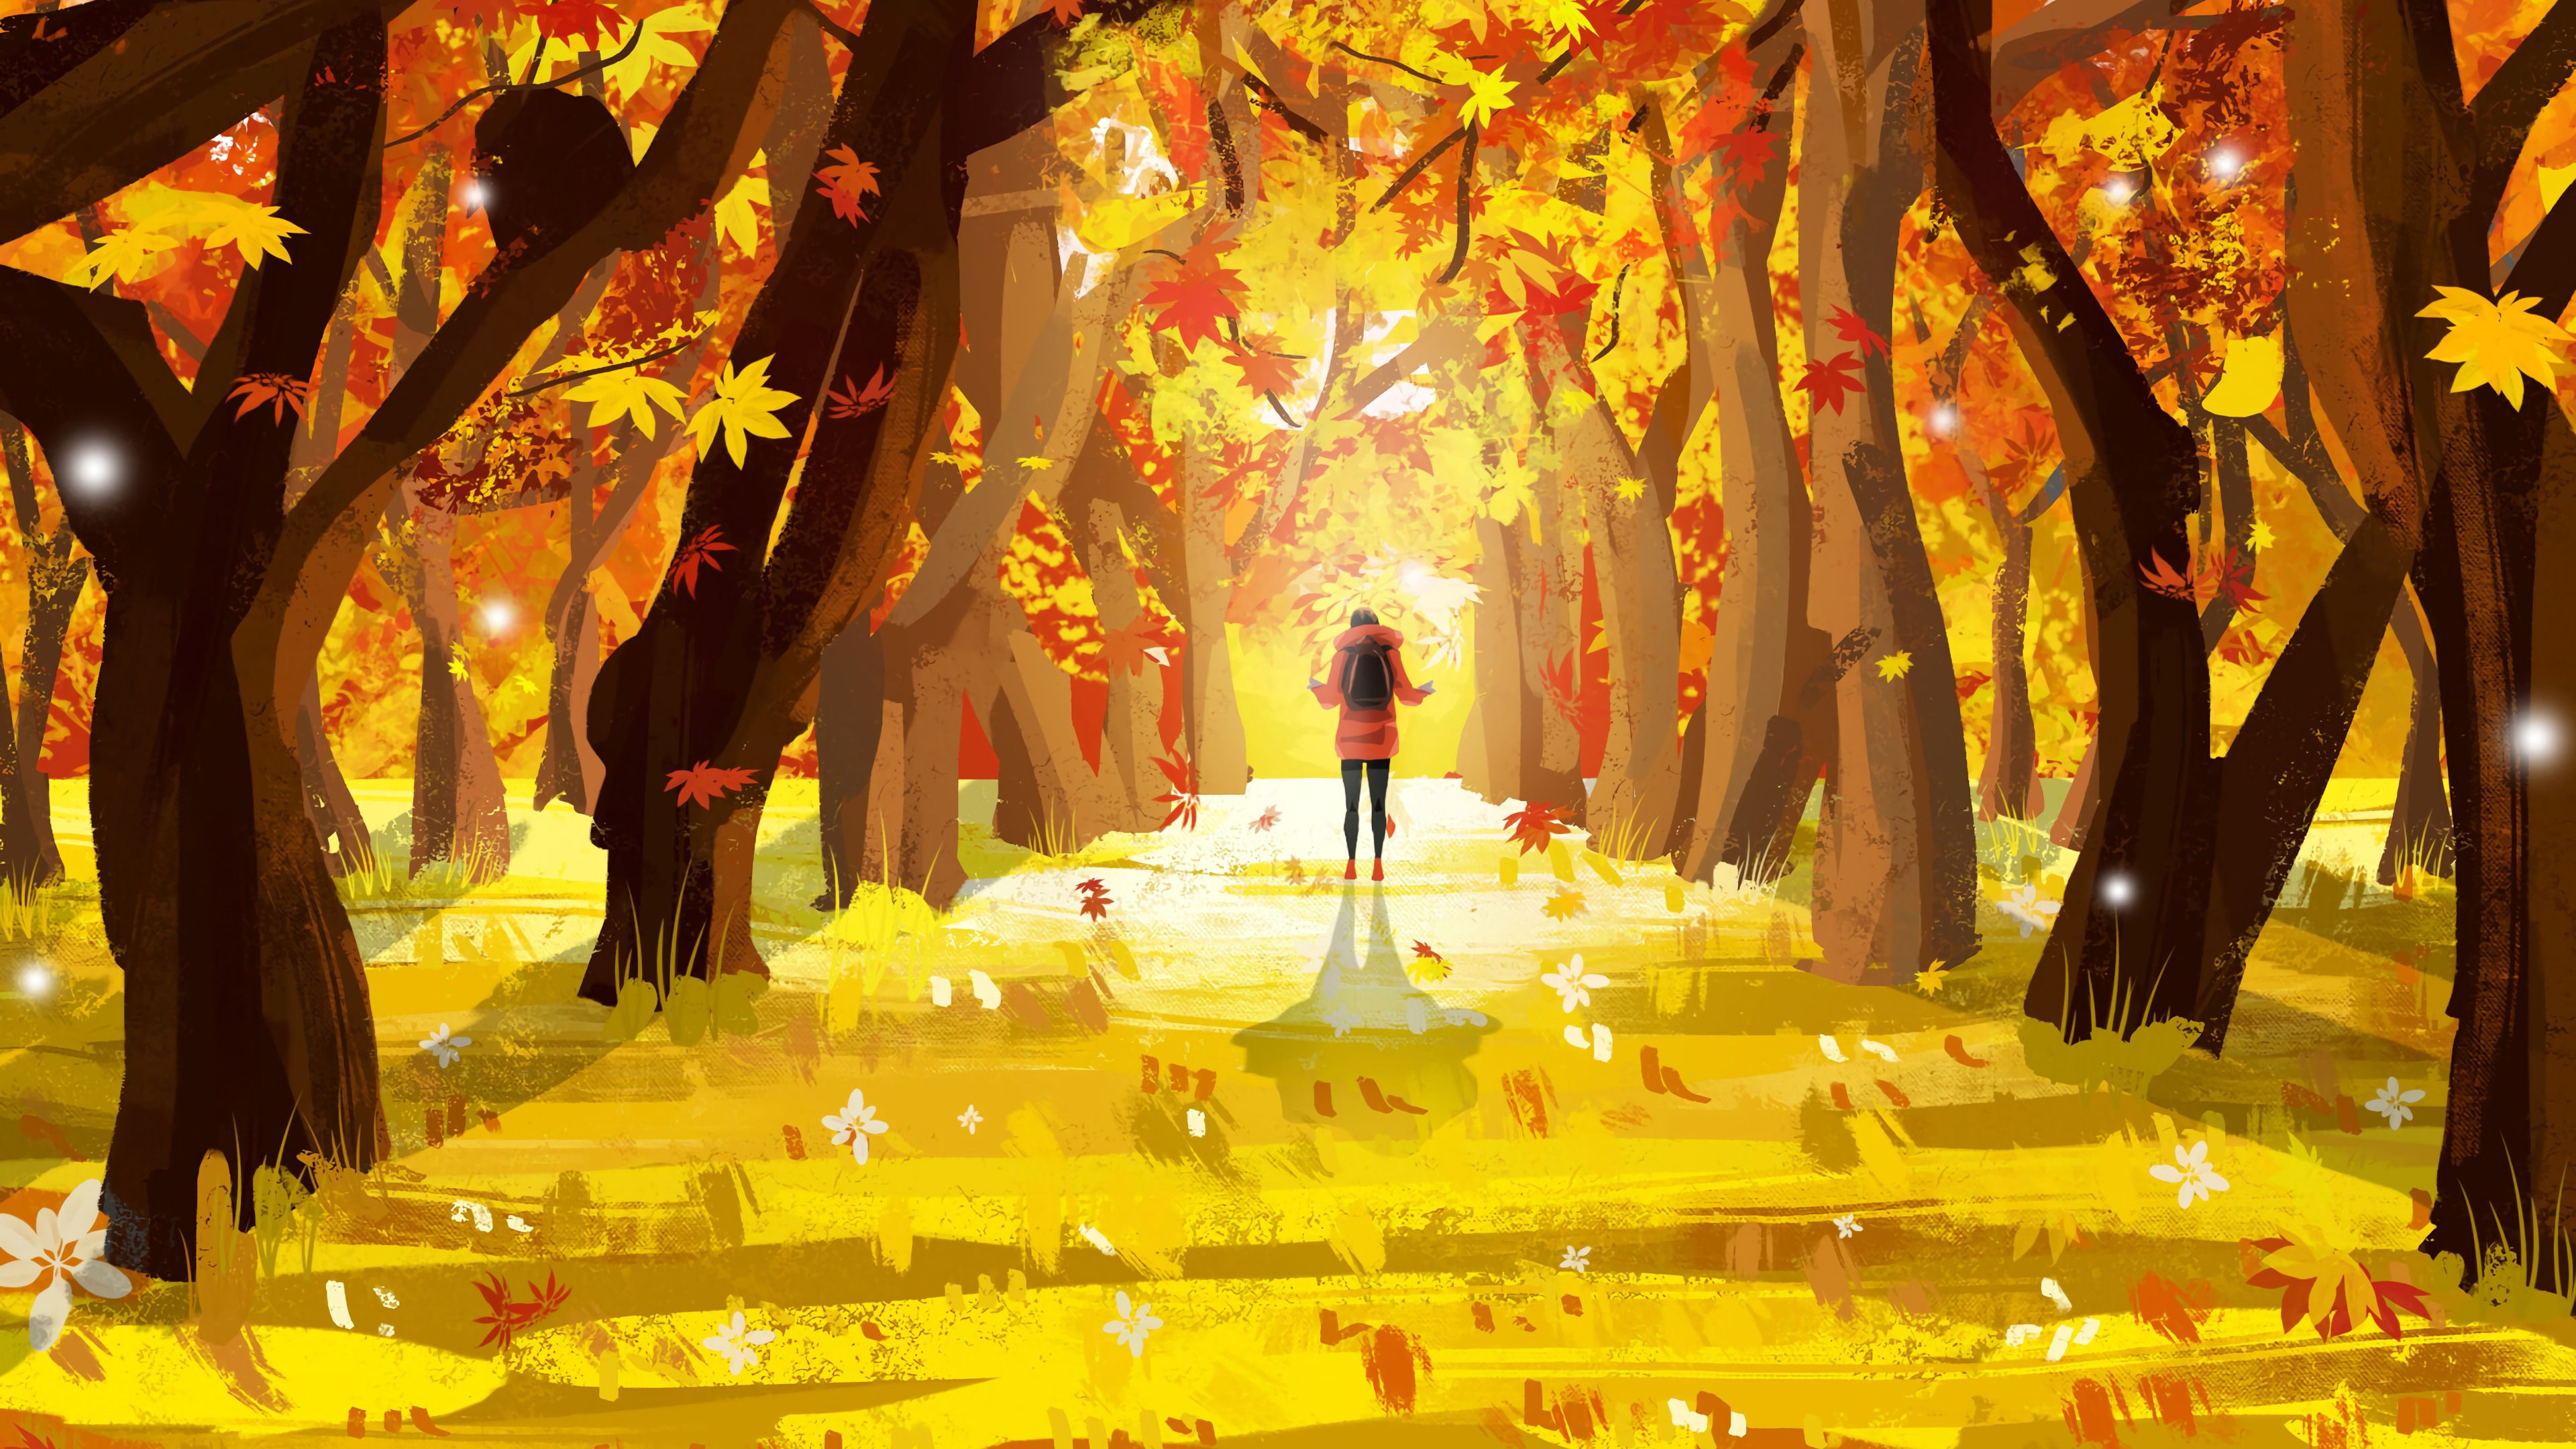 3840x2160 Wallpaper lonely, autumn, leaves, art